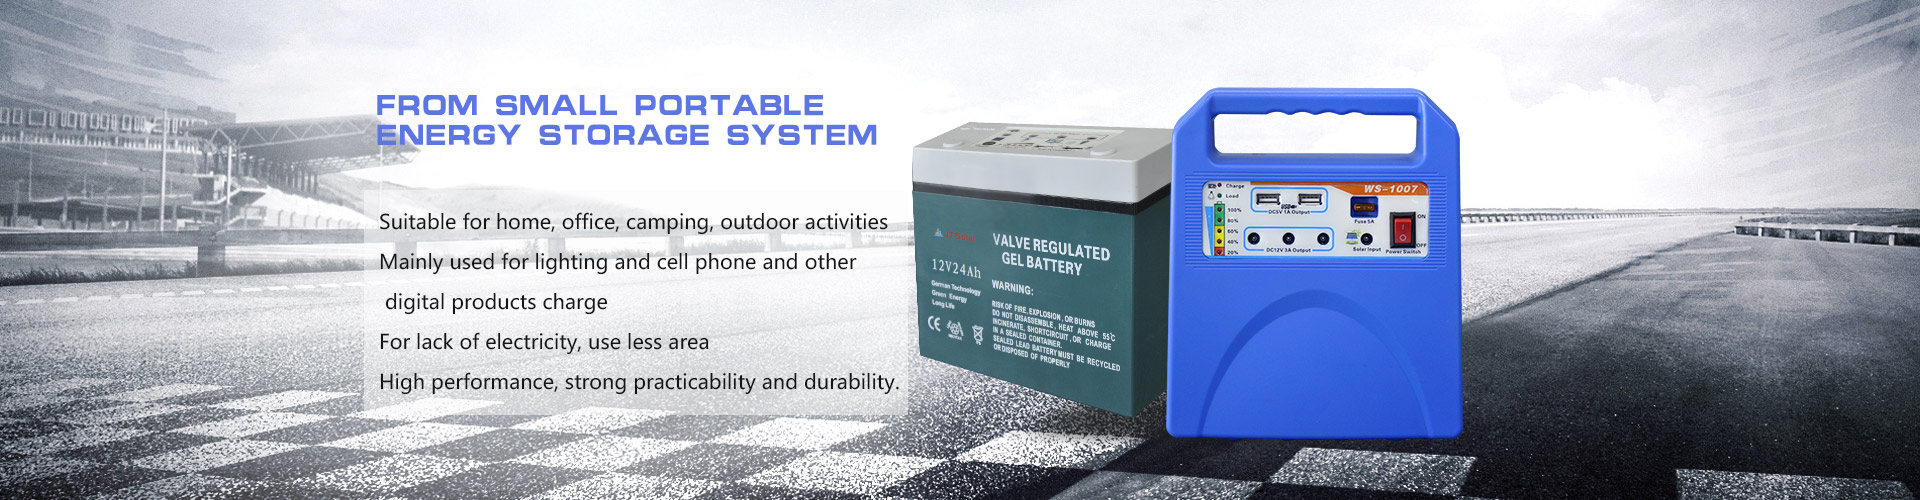 From small portable energy storage system